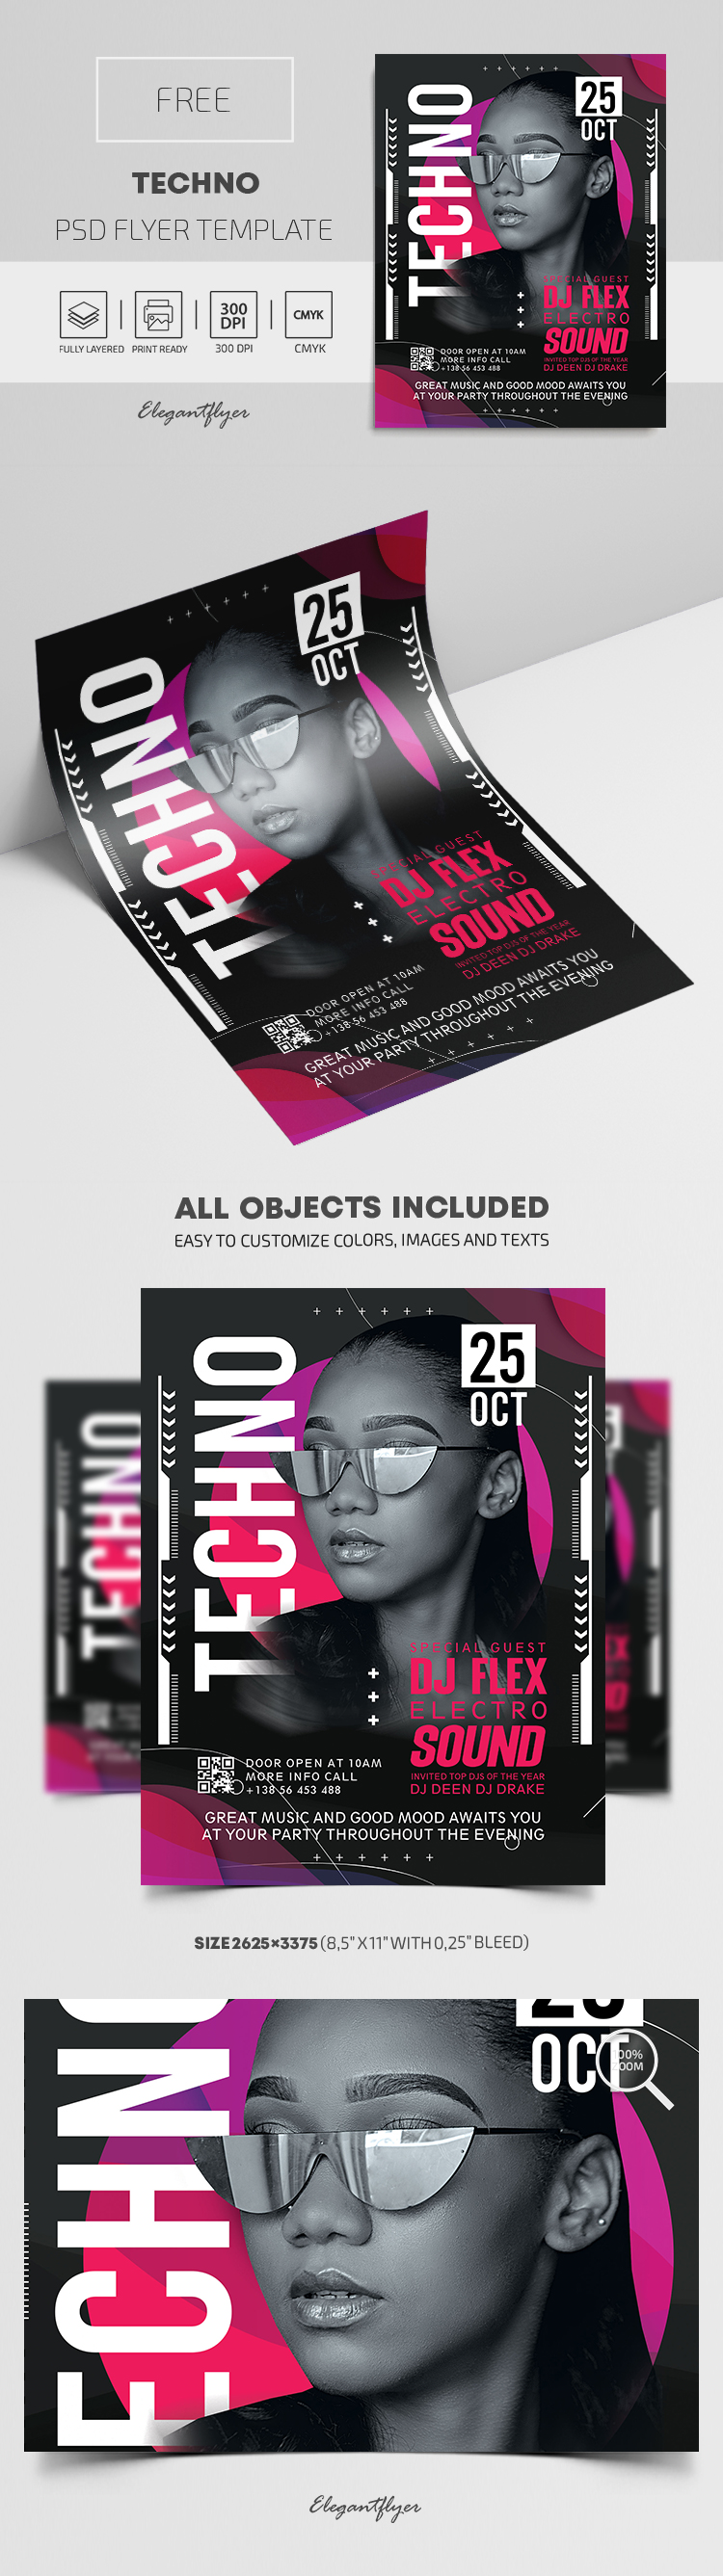 Techno – Free PSD Flyer Template